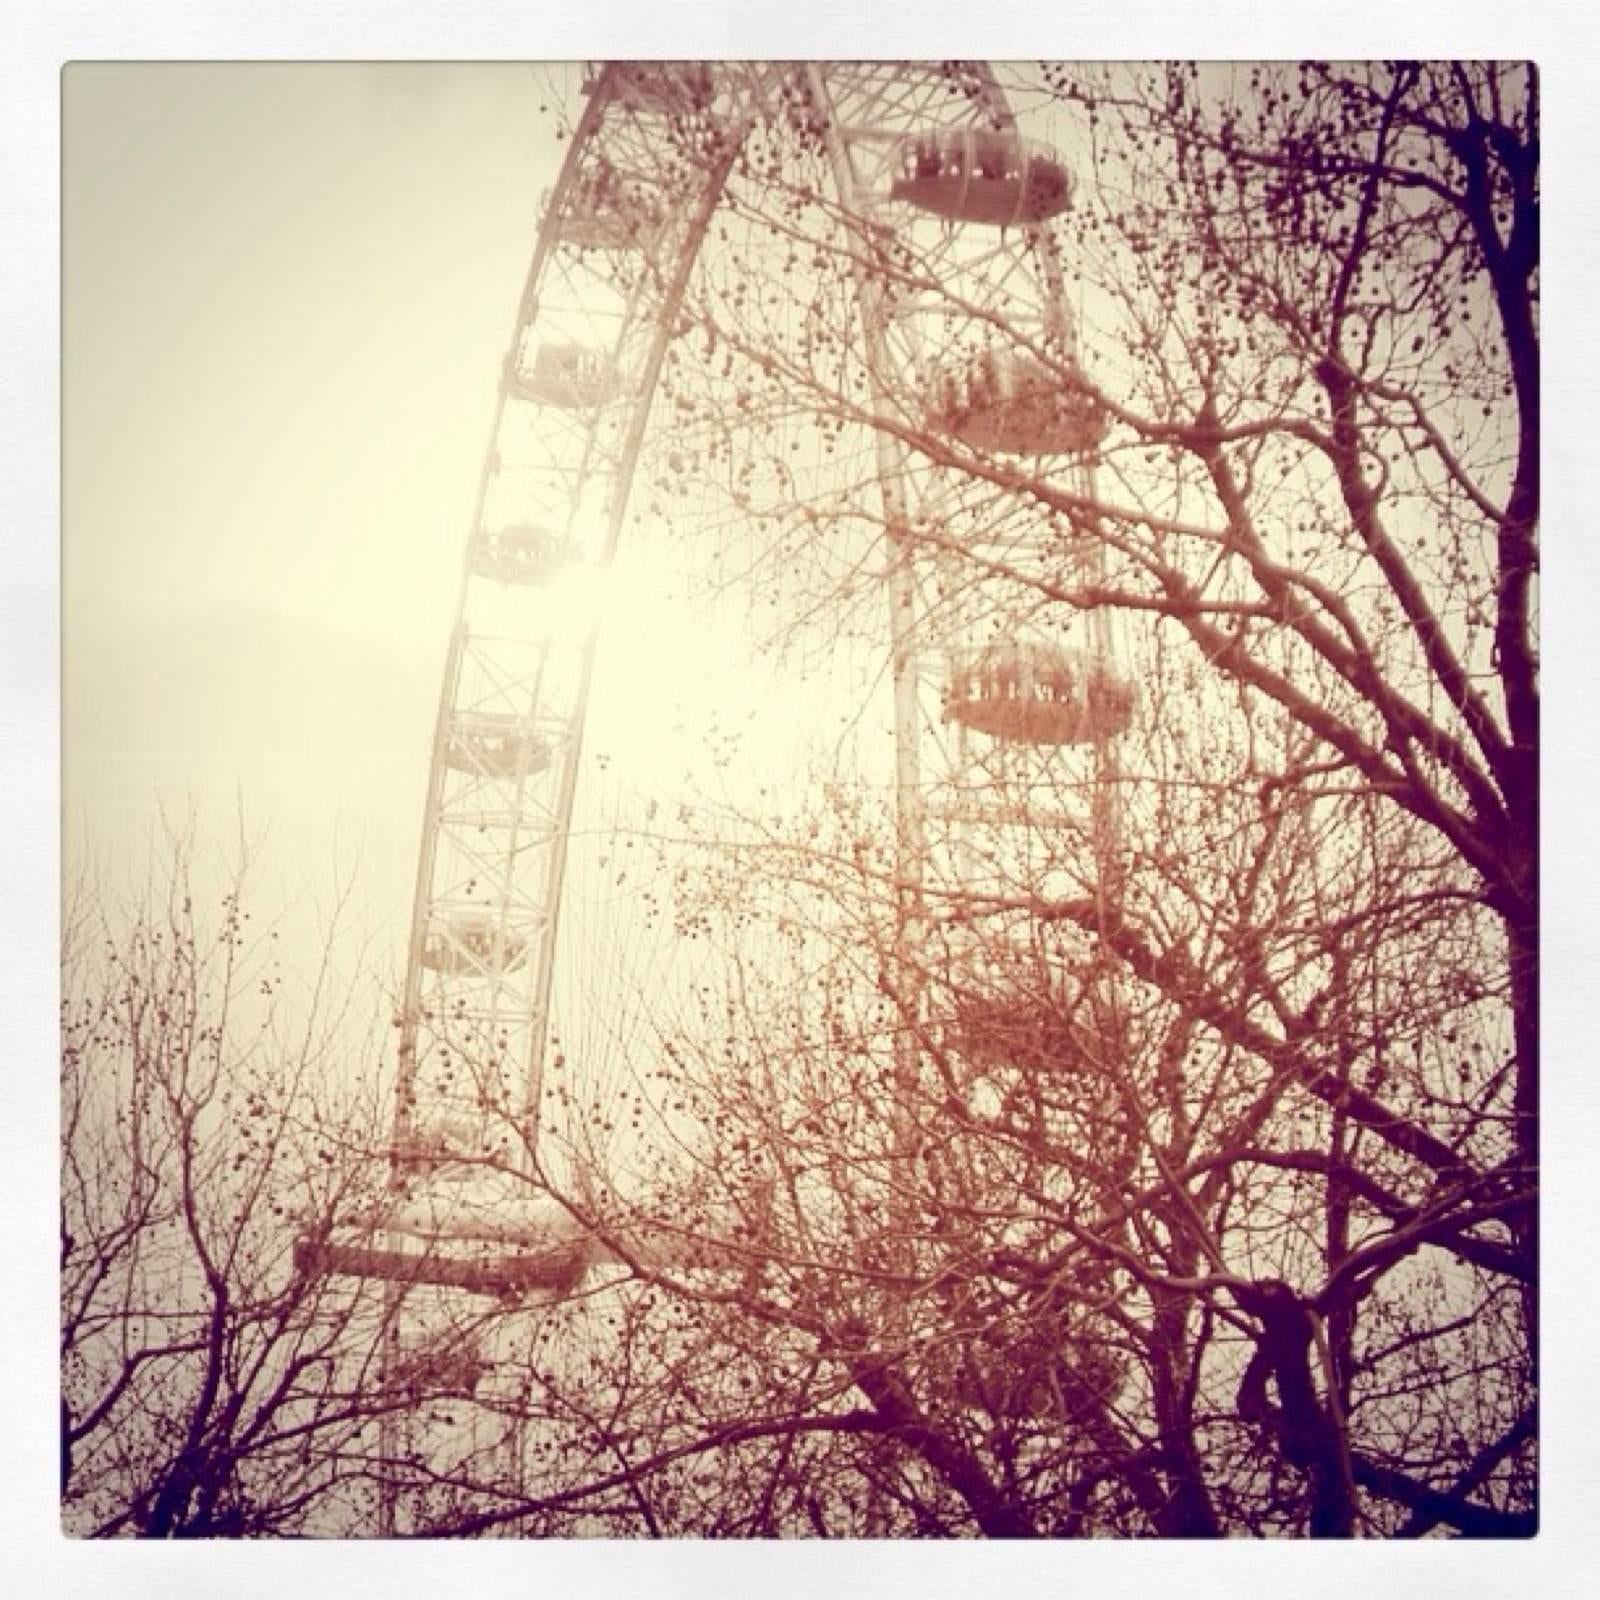 Bosque en London Eye